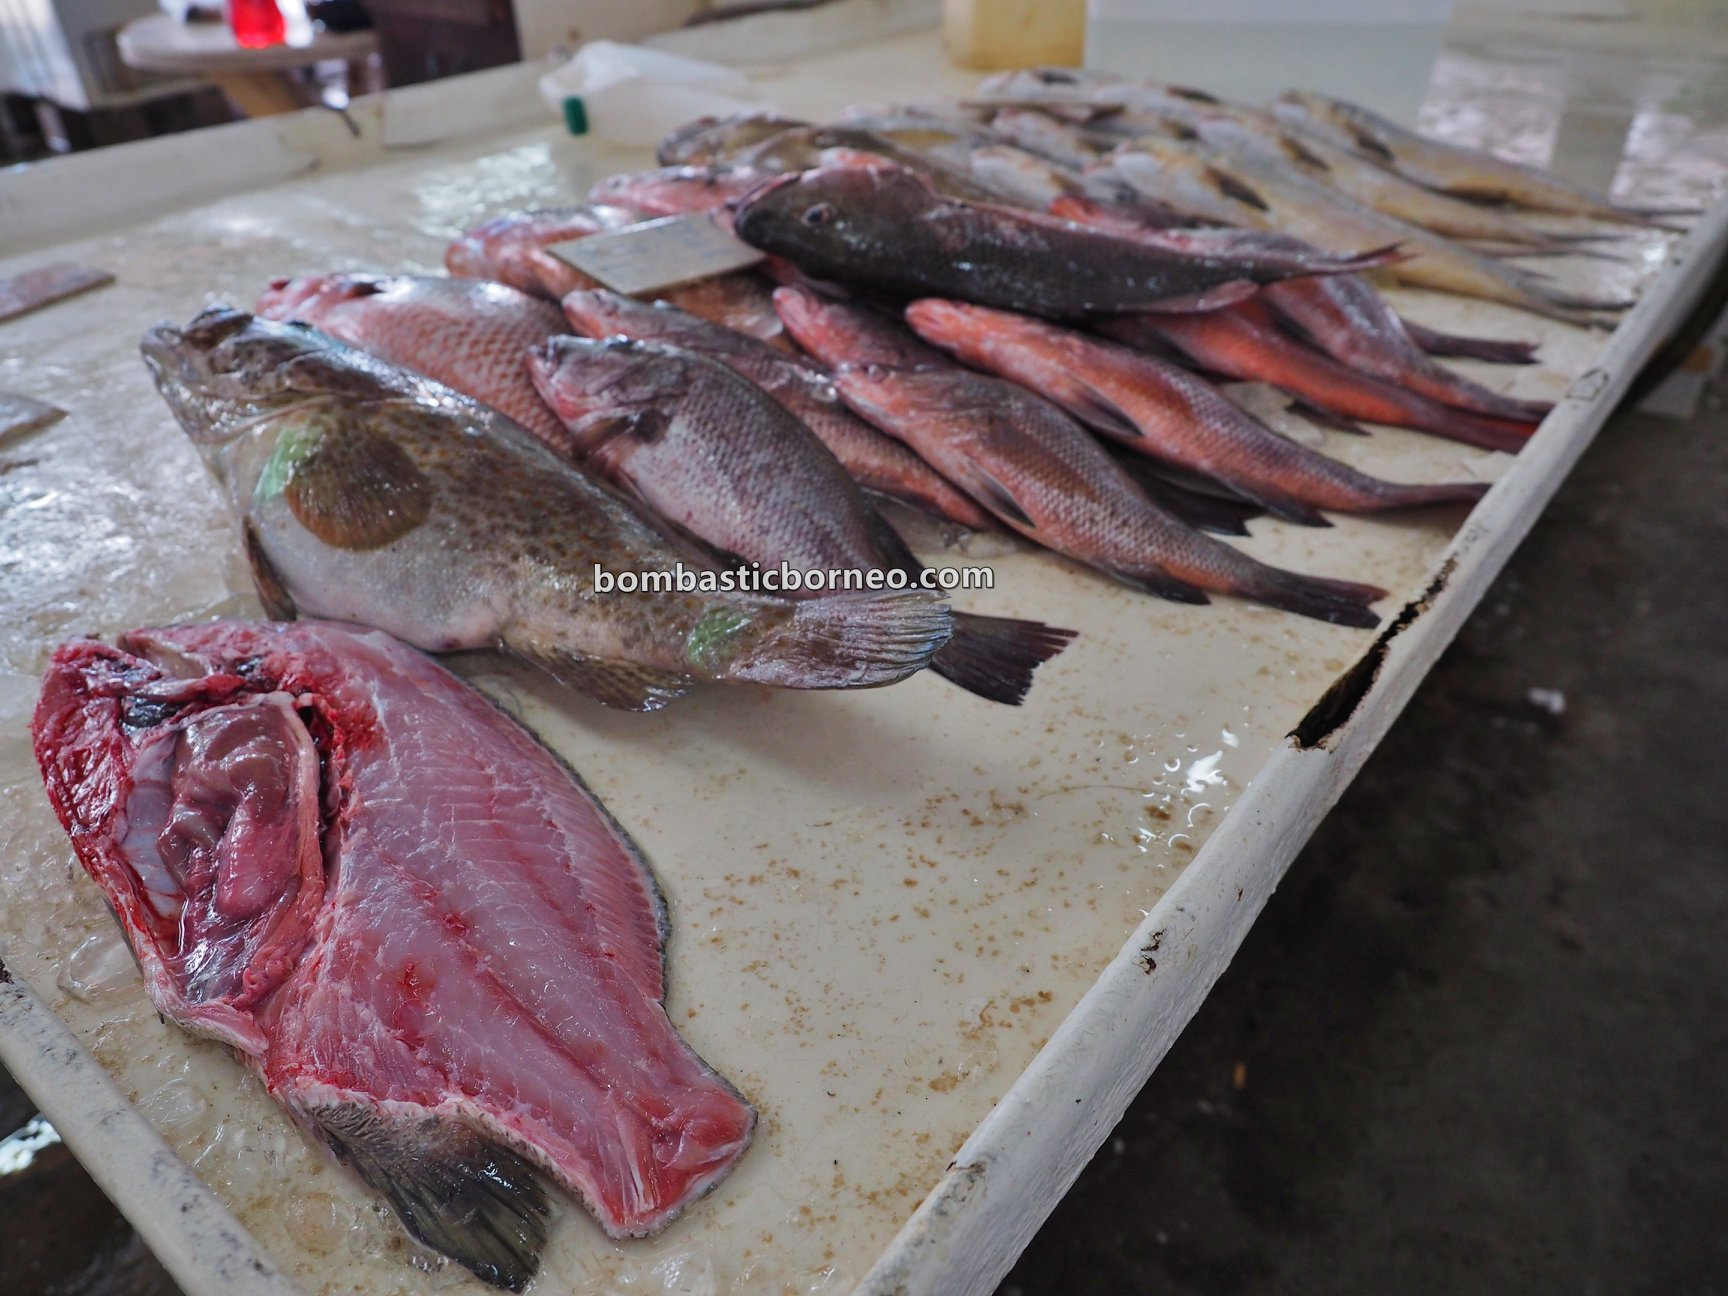 Pasar Sin On, local market, backpackers, destination, fish, seafood, lobster, makanan laut, Borneo, Malaysia, Sabah, Tawau, Tourism, tourist attraction, travel guide,